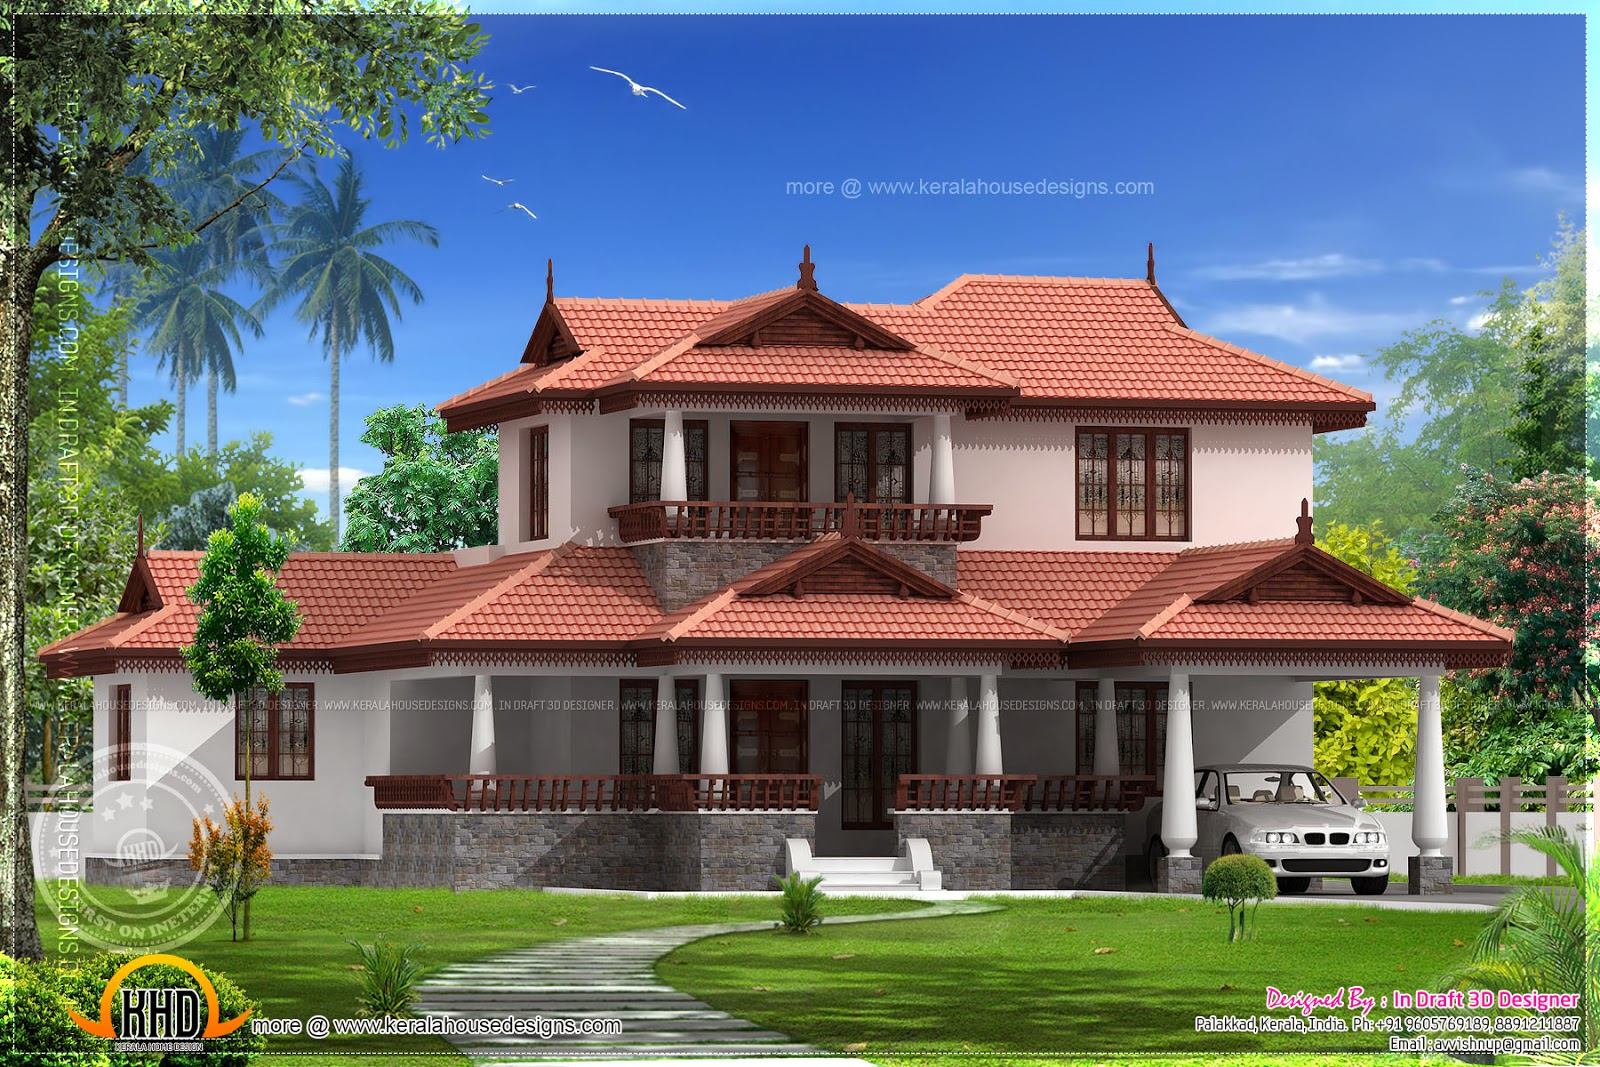 3 bedroom kerala model home elevation kerala home design for Kerala new house models